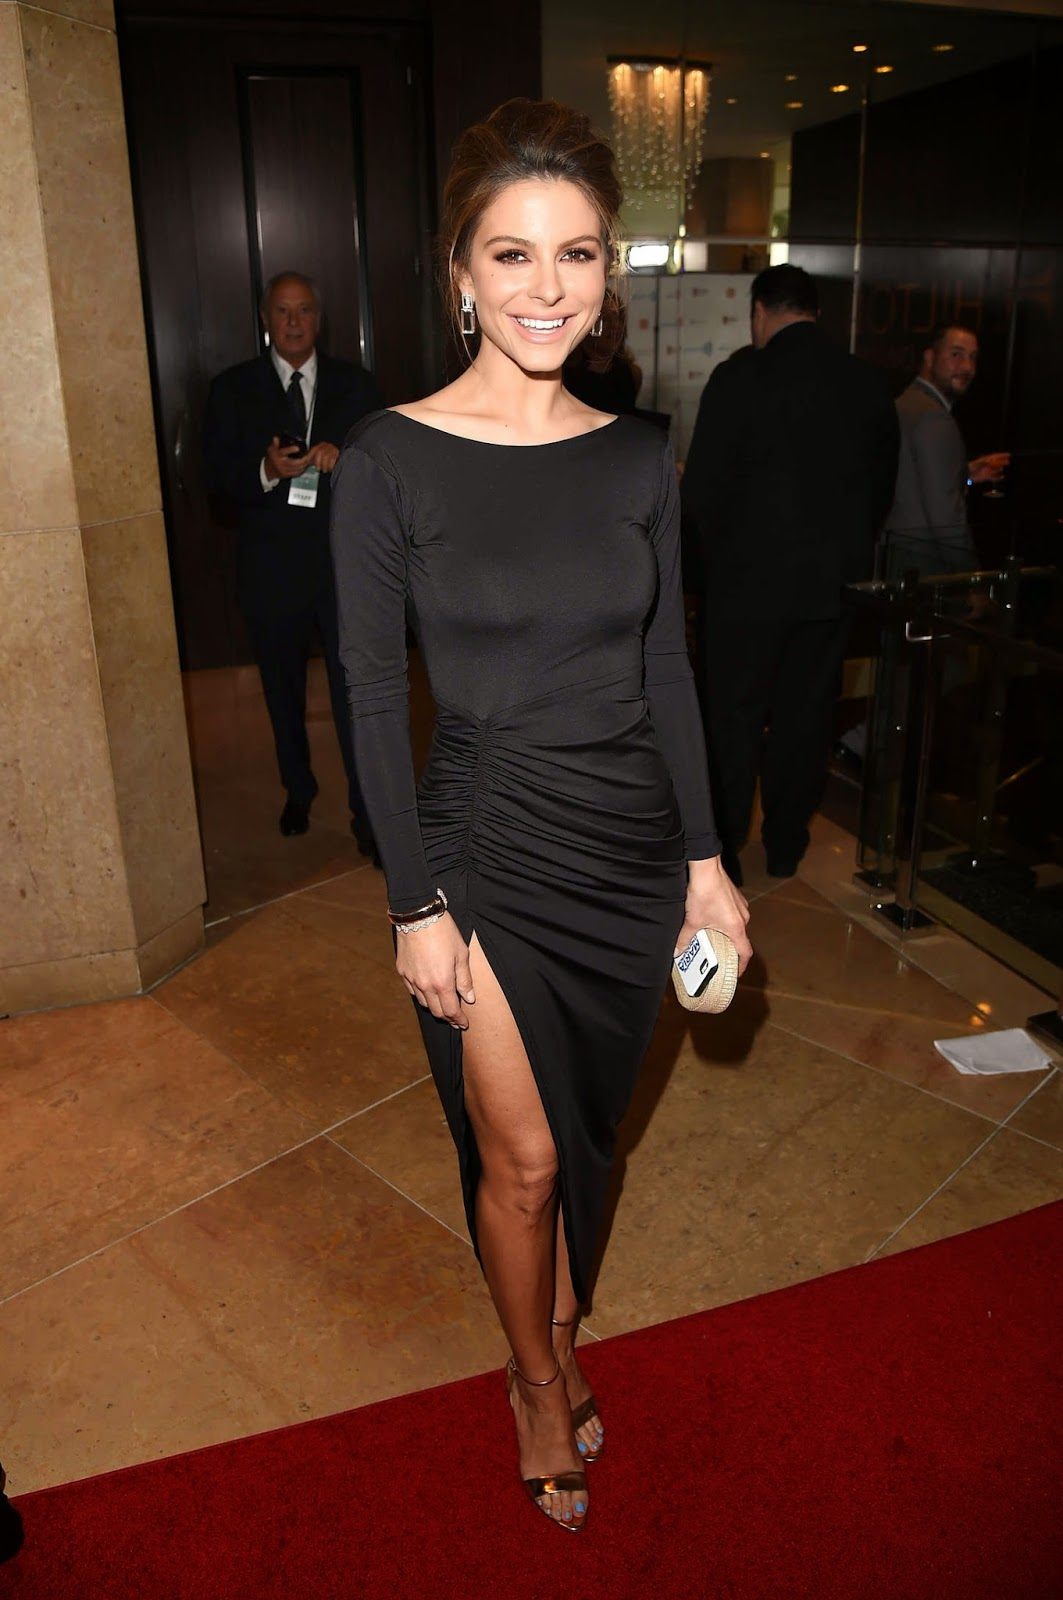 Maria Menounos shows off pert derrière in a fitted dress at the 2014 GLAAD Media Awards in LA